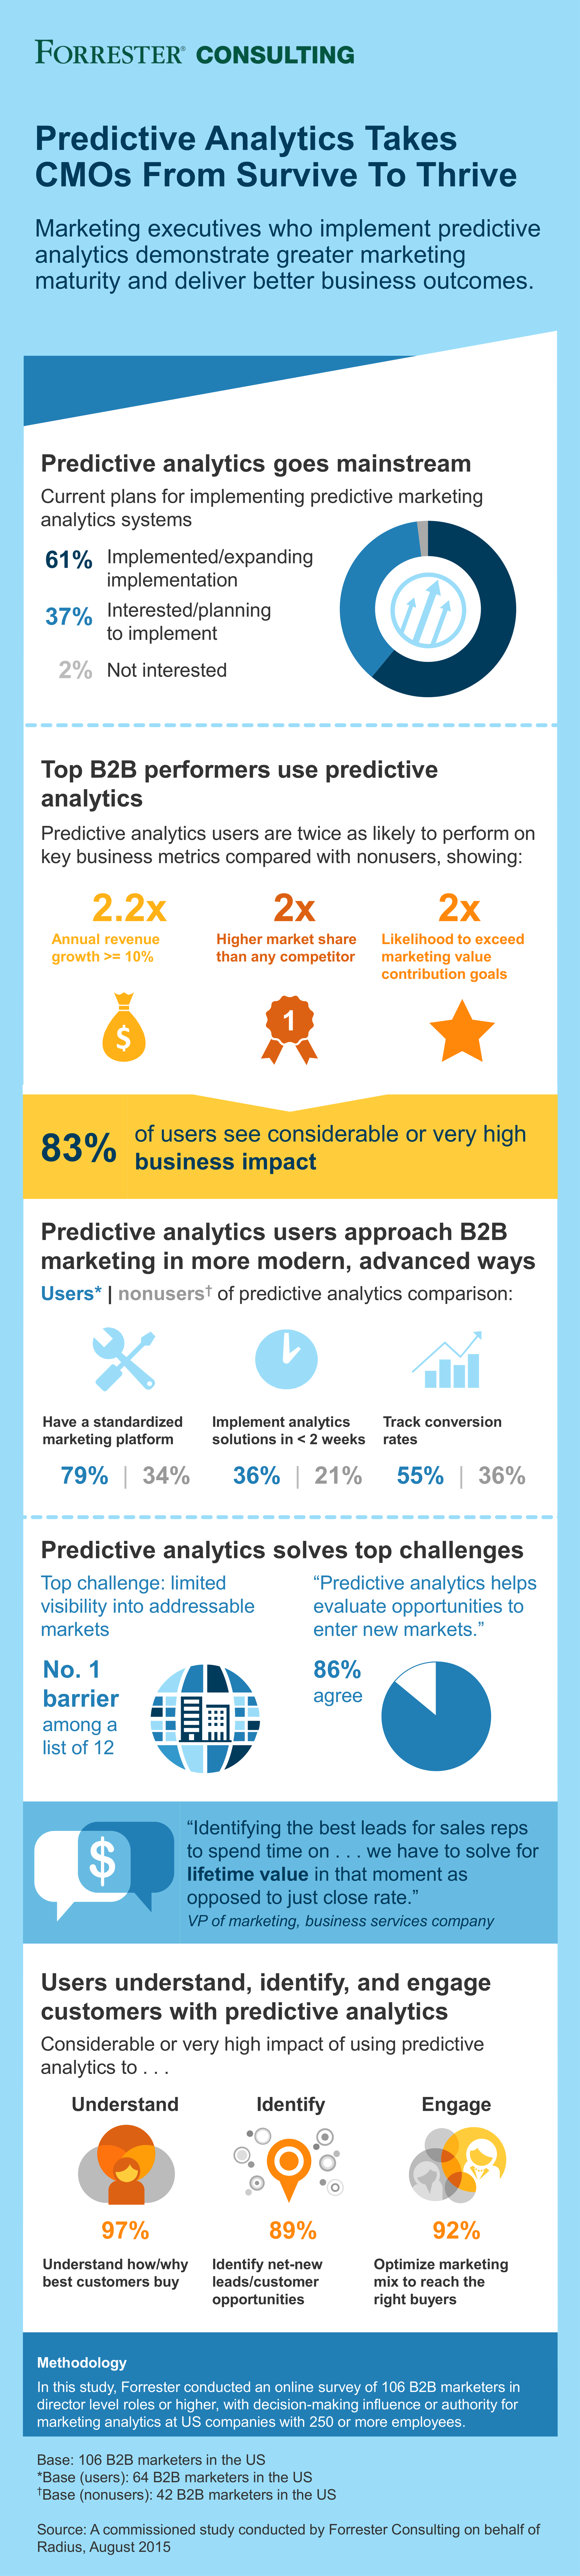 Forrester_B2B_Analytics_Infographic.png